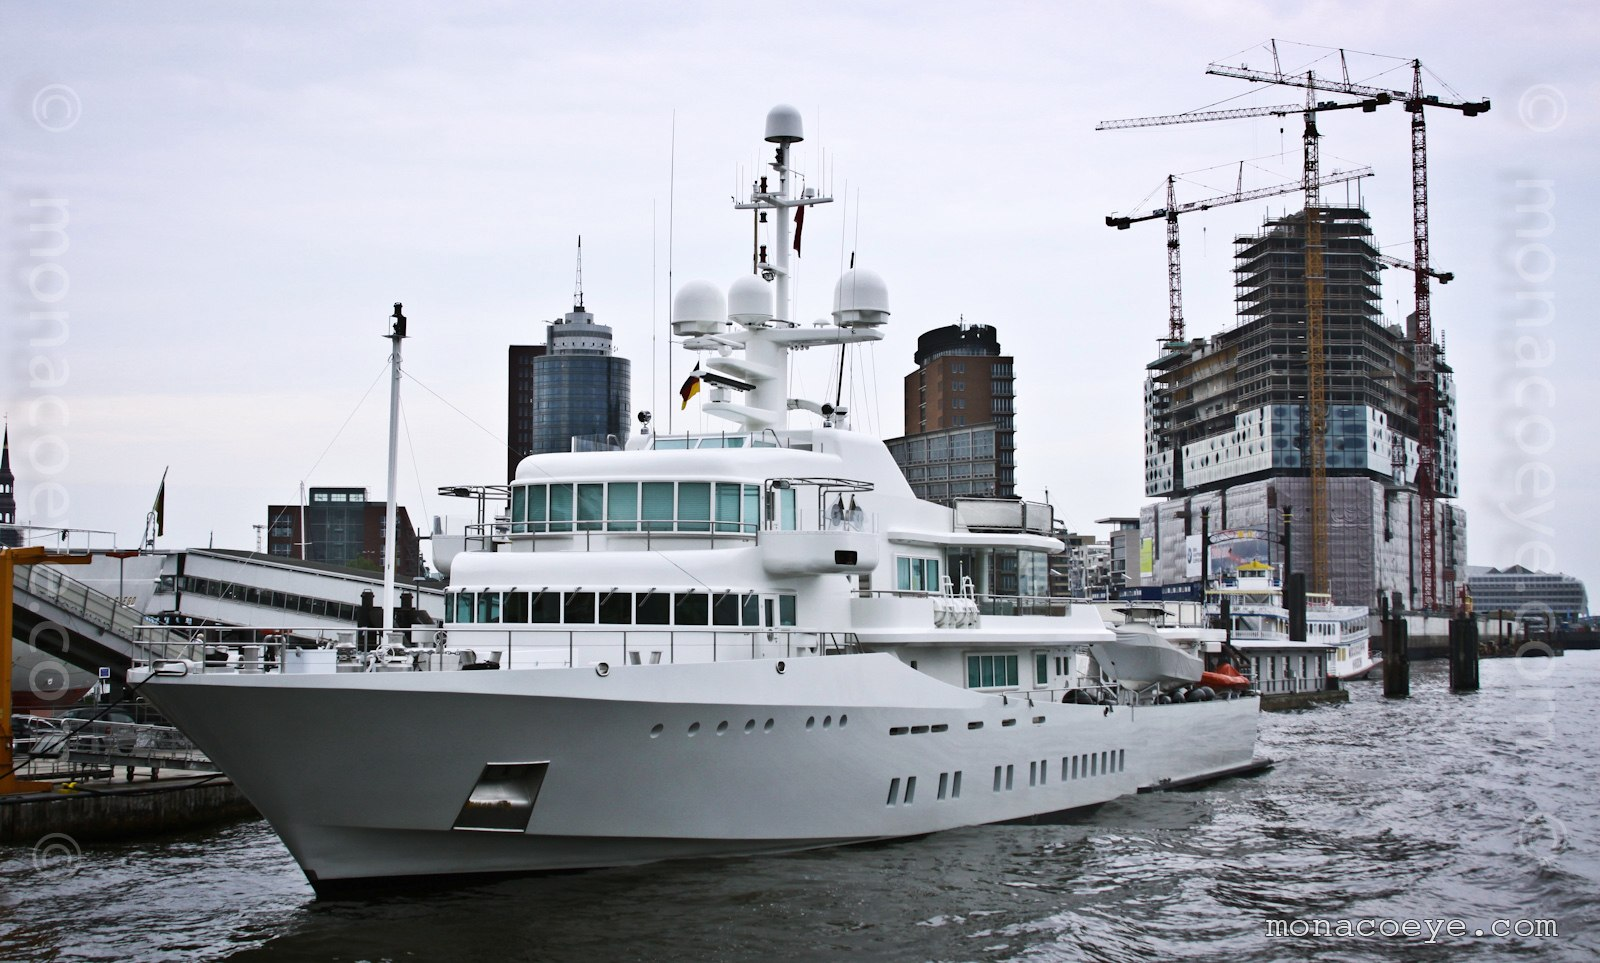 Senses. Newly refitted 59-metre yacht, built by Schweers in 1999, exterior by Francis Design, interior by Philippe Starck, architect Kusch Yachts